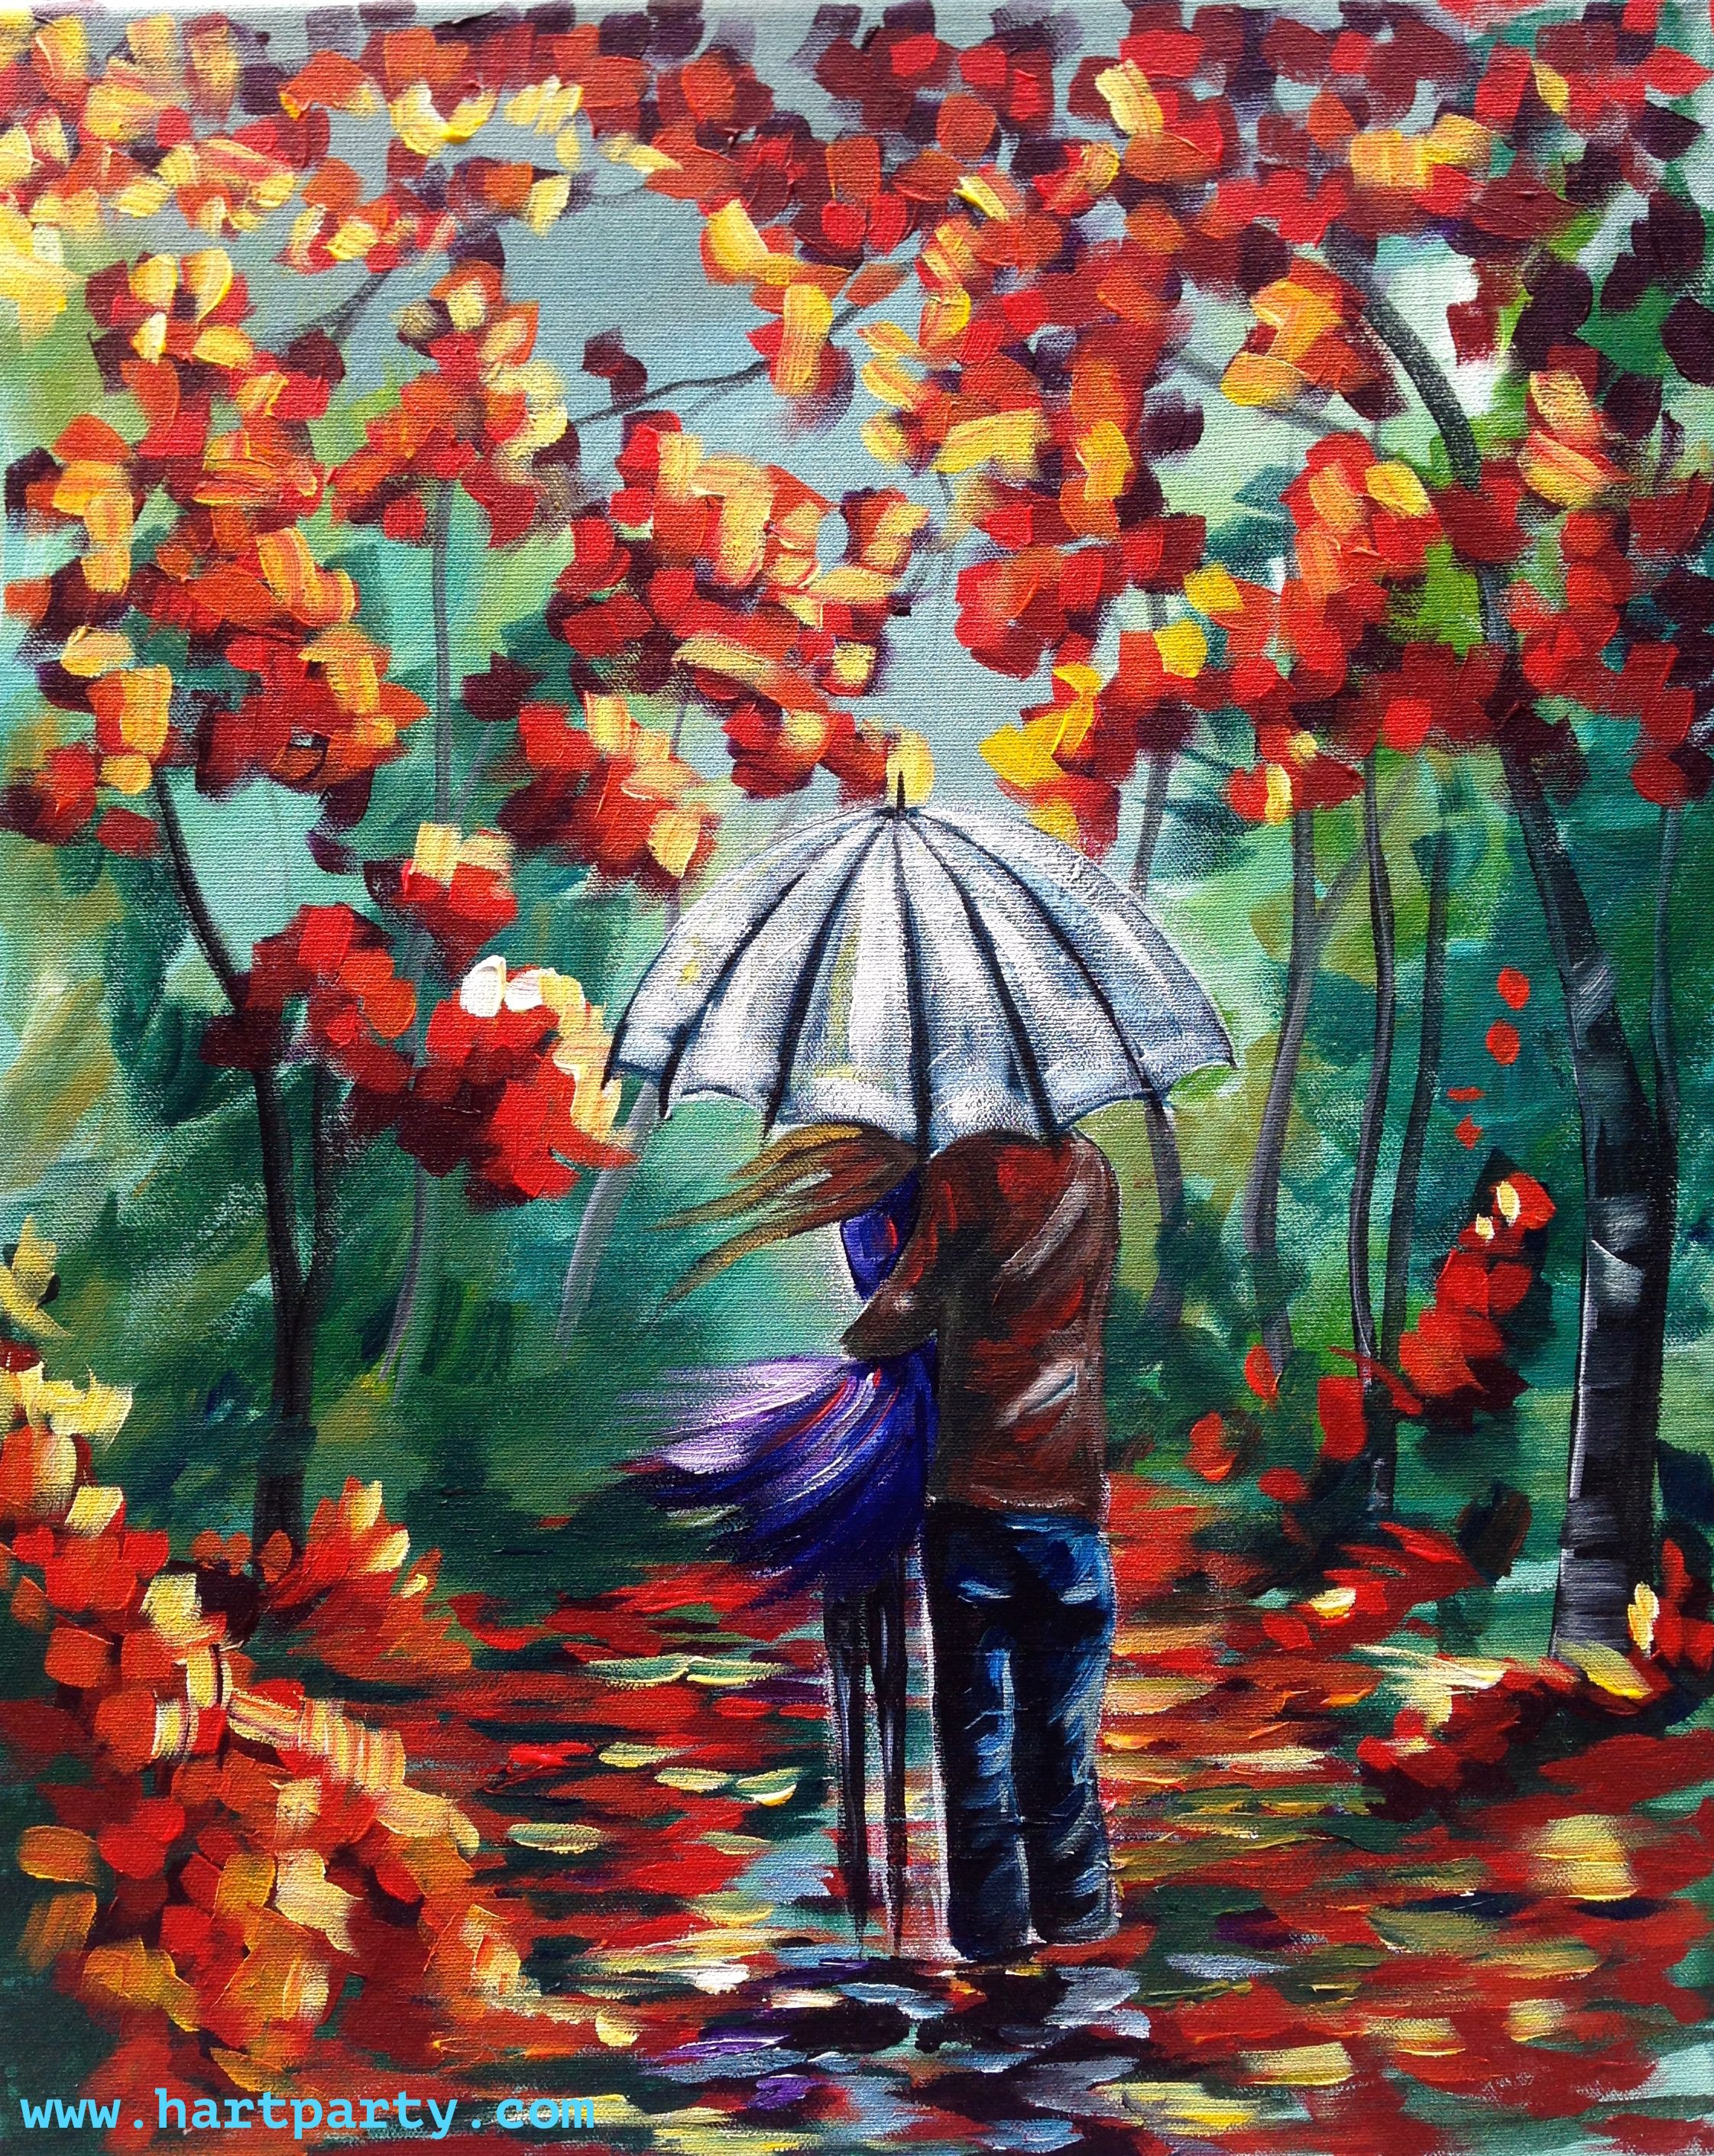 Lovers Walk By Cinnamon Cooney The Art Sherpa As A Fully Guided Art Lesson For Hart Party On Youtube Free Online Home Painting Par The Art Sherpa Painting Art